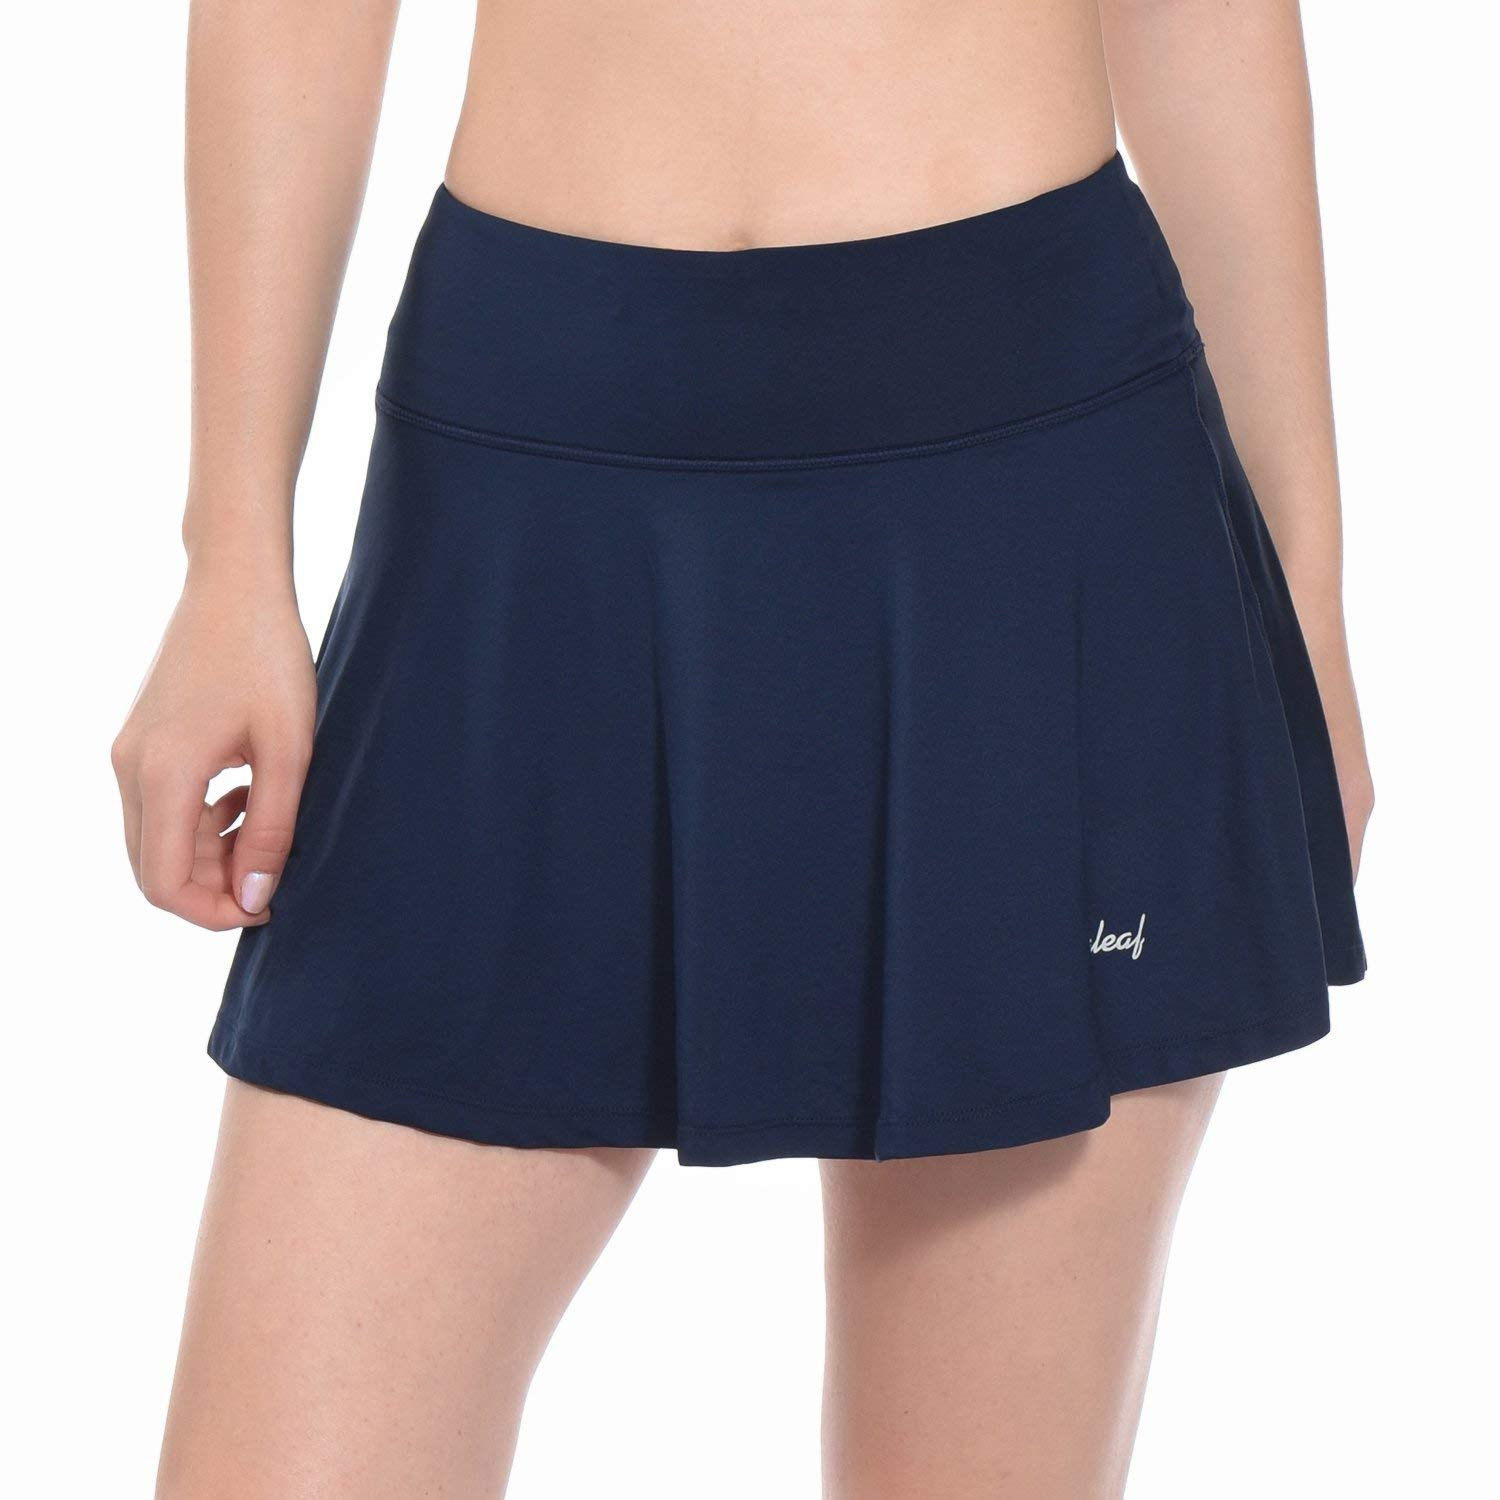 Baleaf Women's Athletic Golf Skirt Tennis Skort Pleated with Pockets Navy Size M by Baleaf